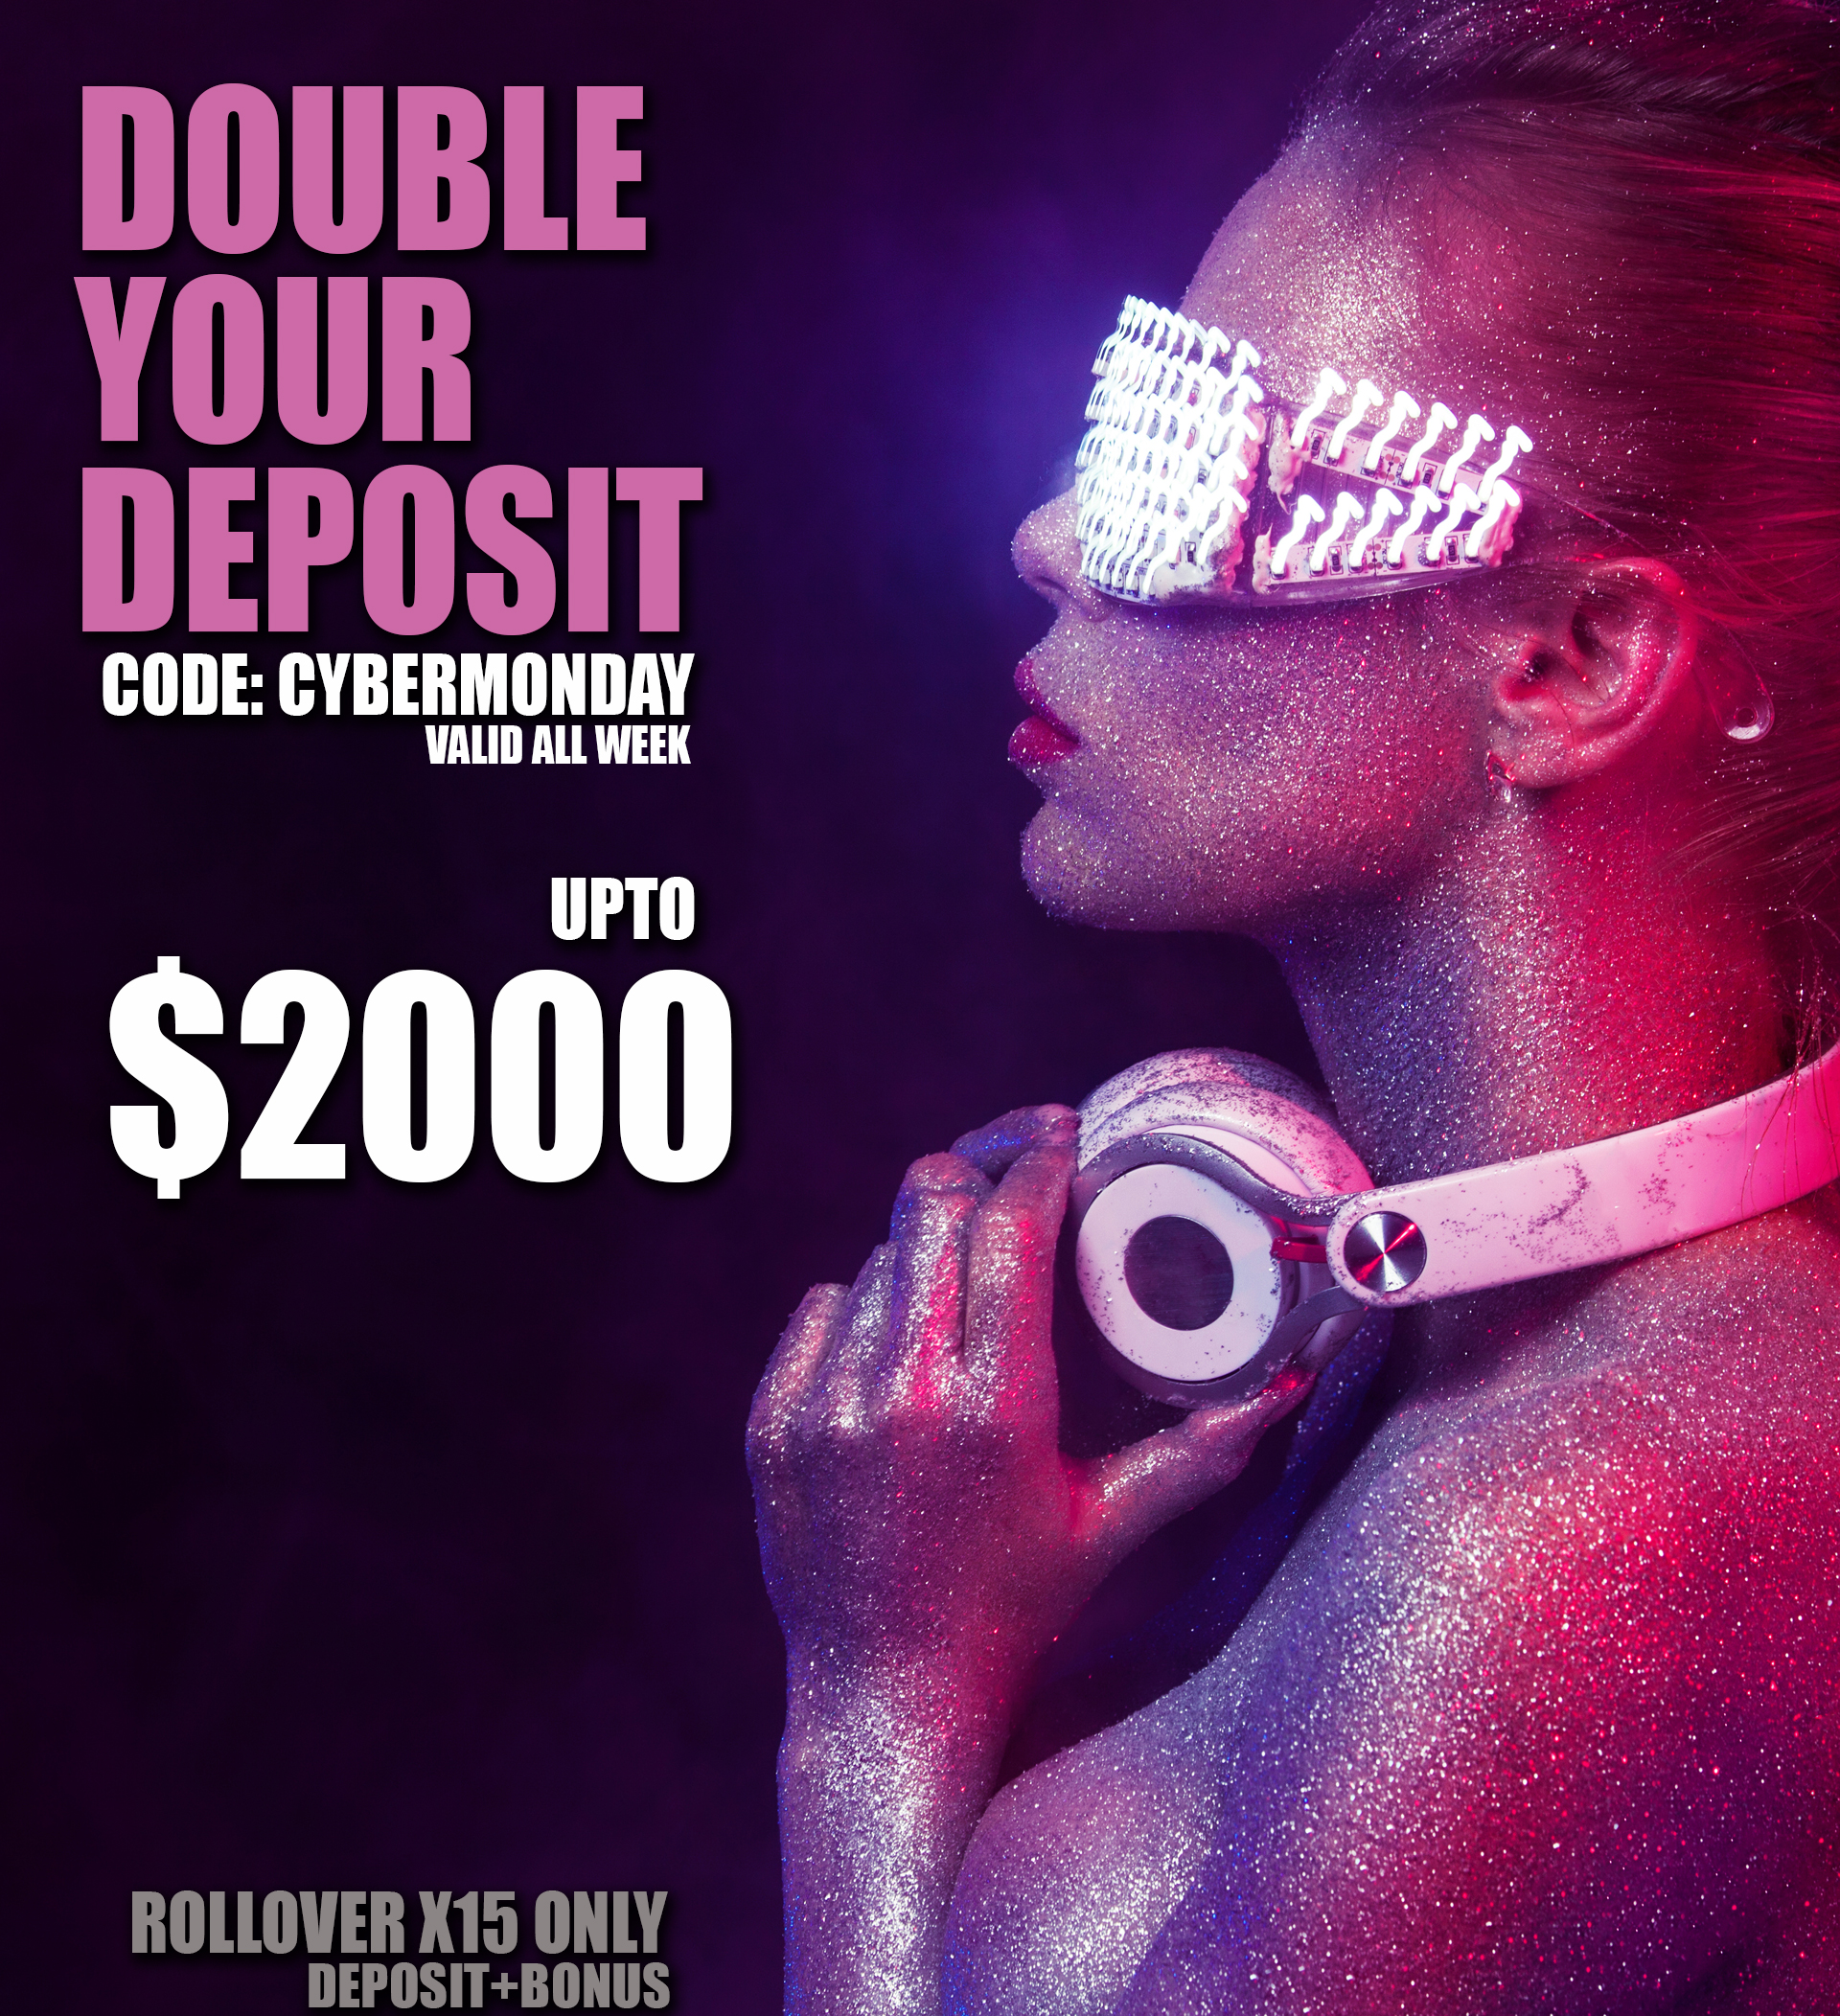 sitename-double-your-deposit-upto-2000-code-cybermonday-play-with-the-total-amount